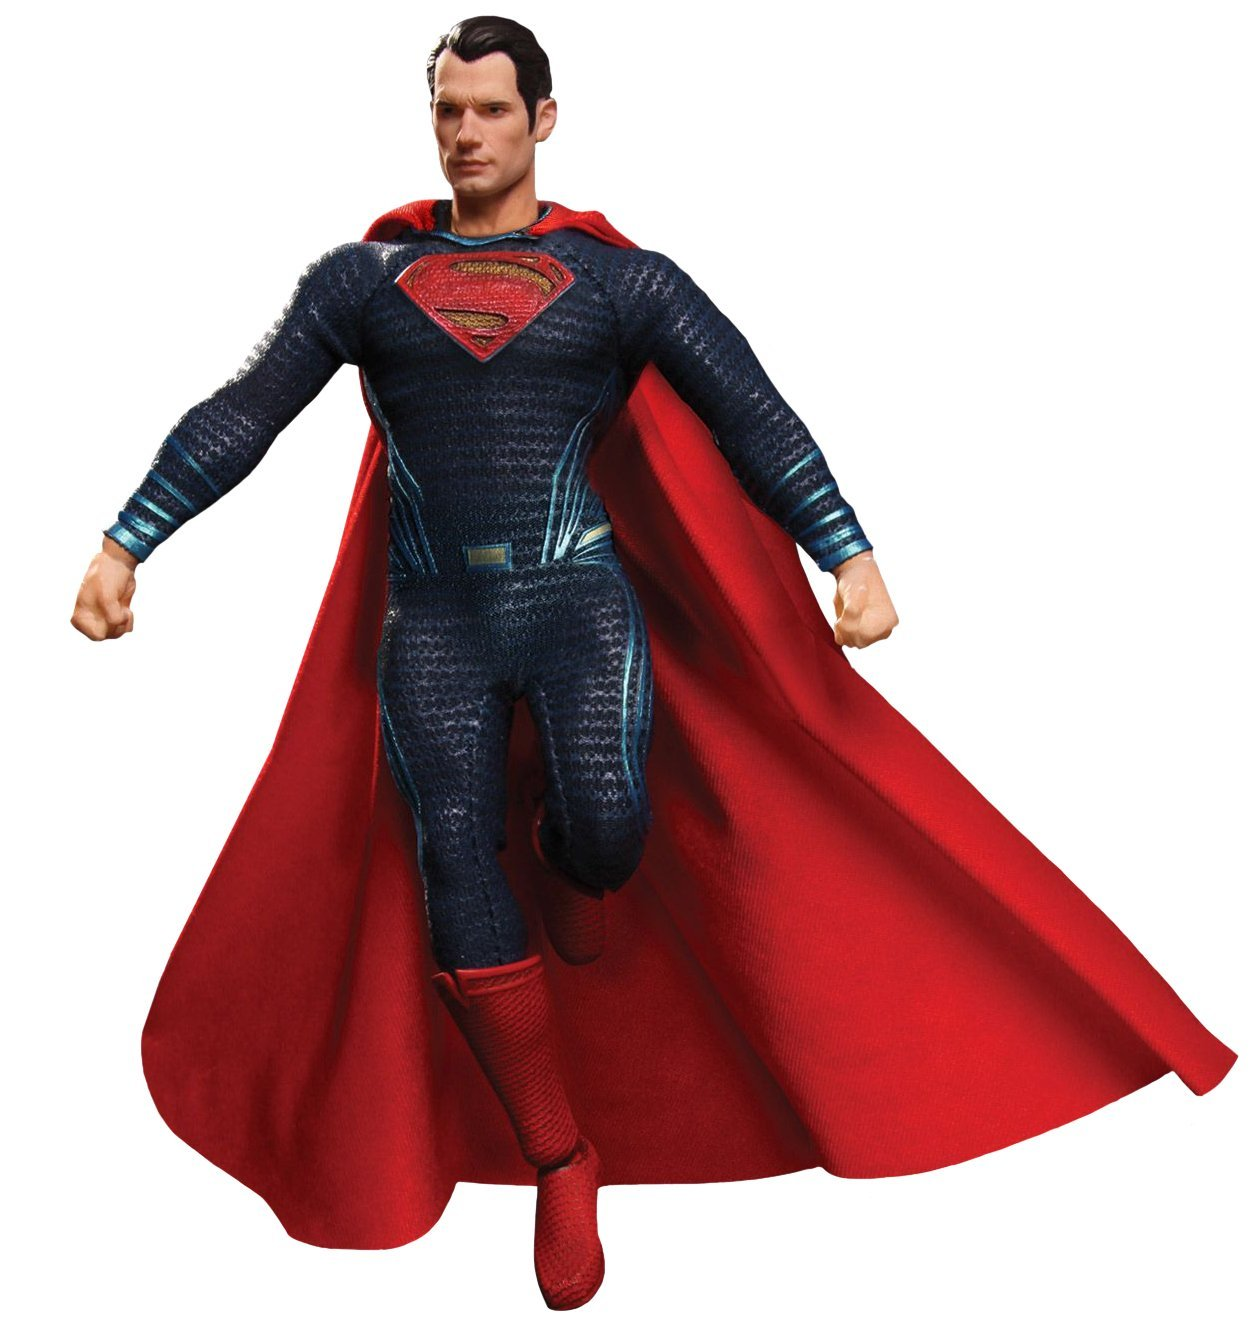 Batman vs. Superman One:12 Collective Superman Super Hero 6.5 Action Figure Toys for Boys with Retail Box<br>